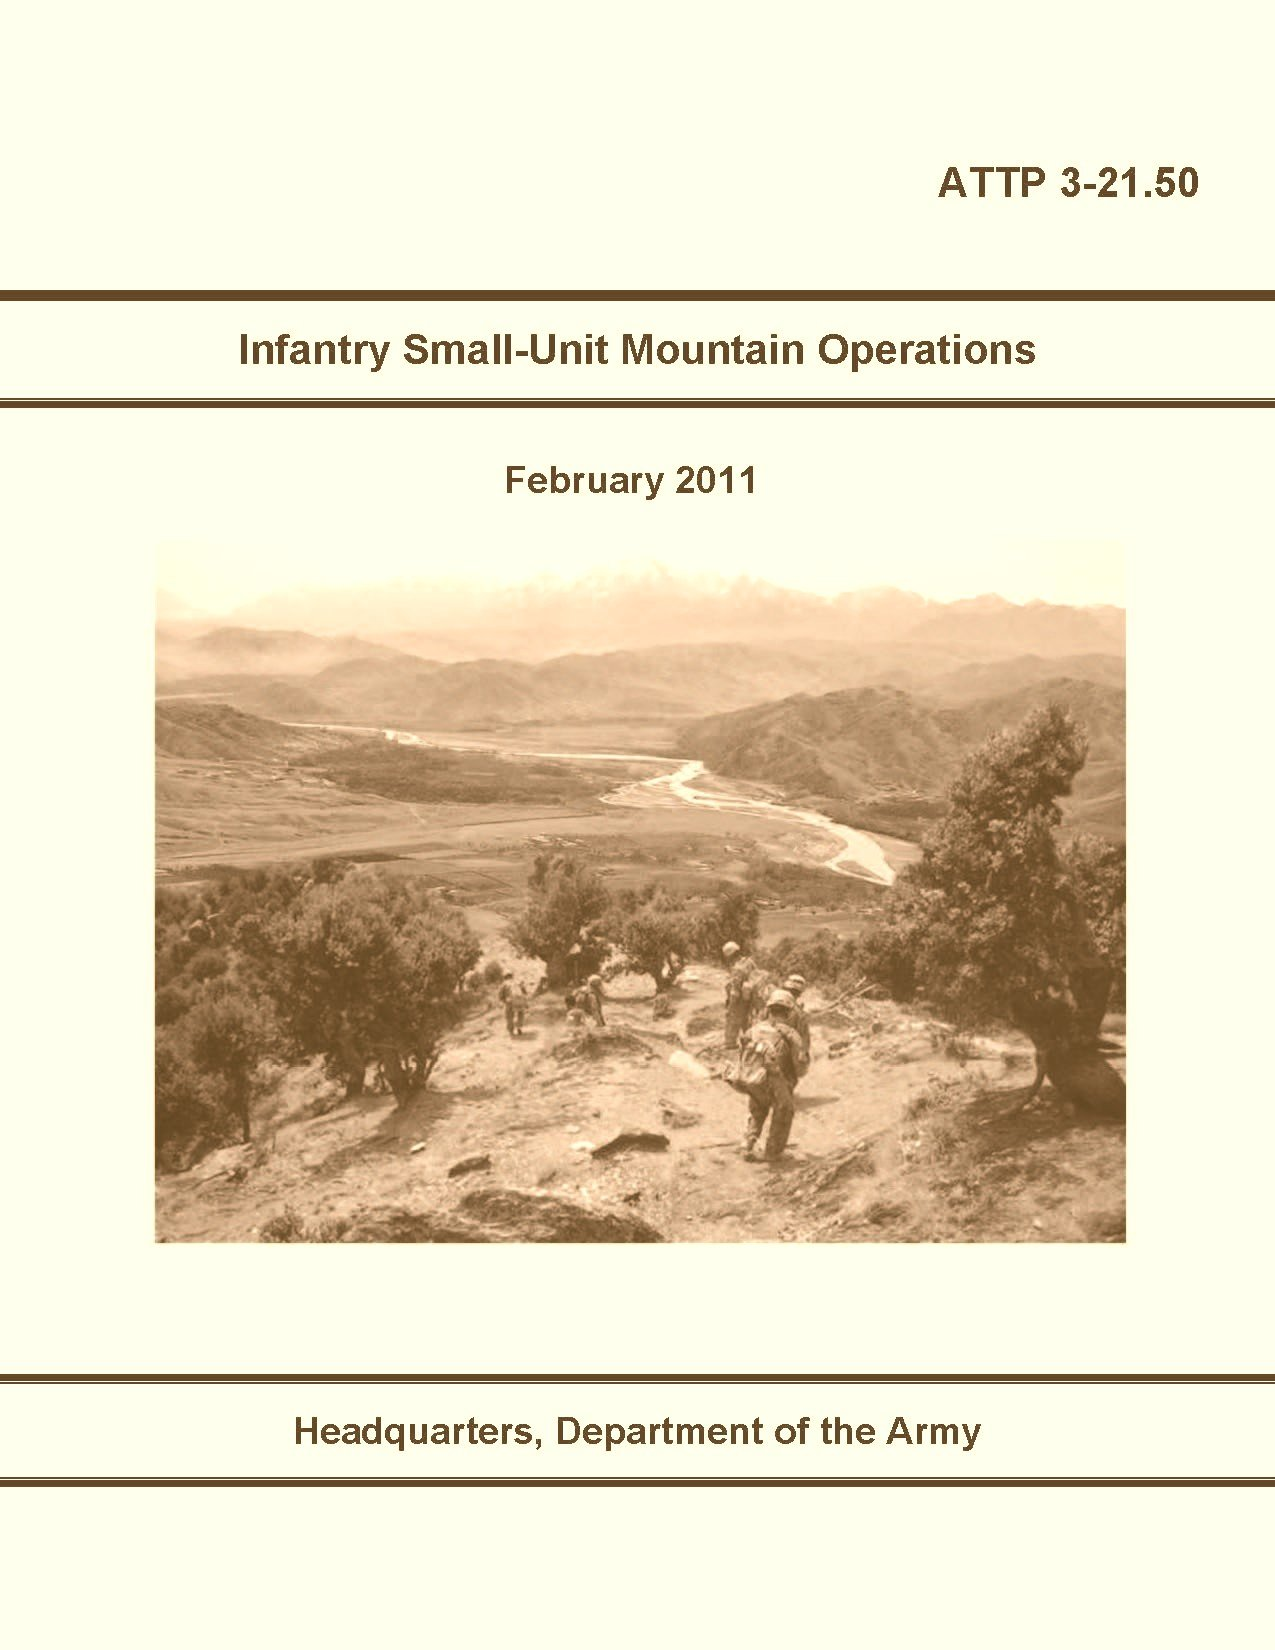 attp 3-21.50 Infantry Small-Unit Mountain Operations 2011 ebook